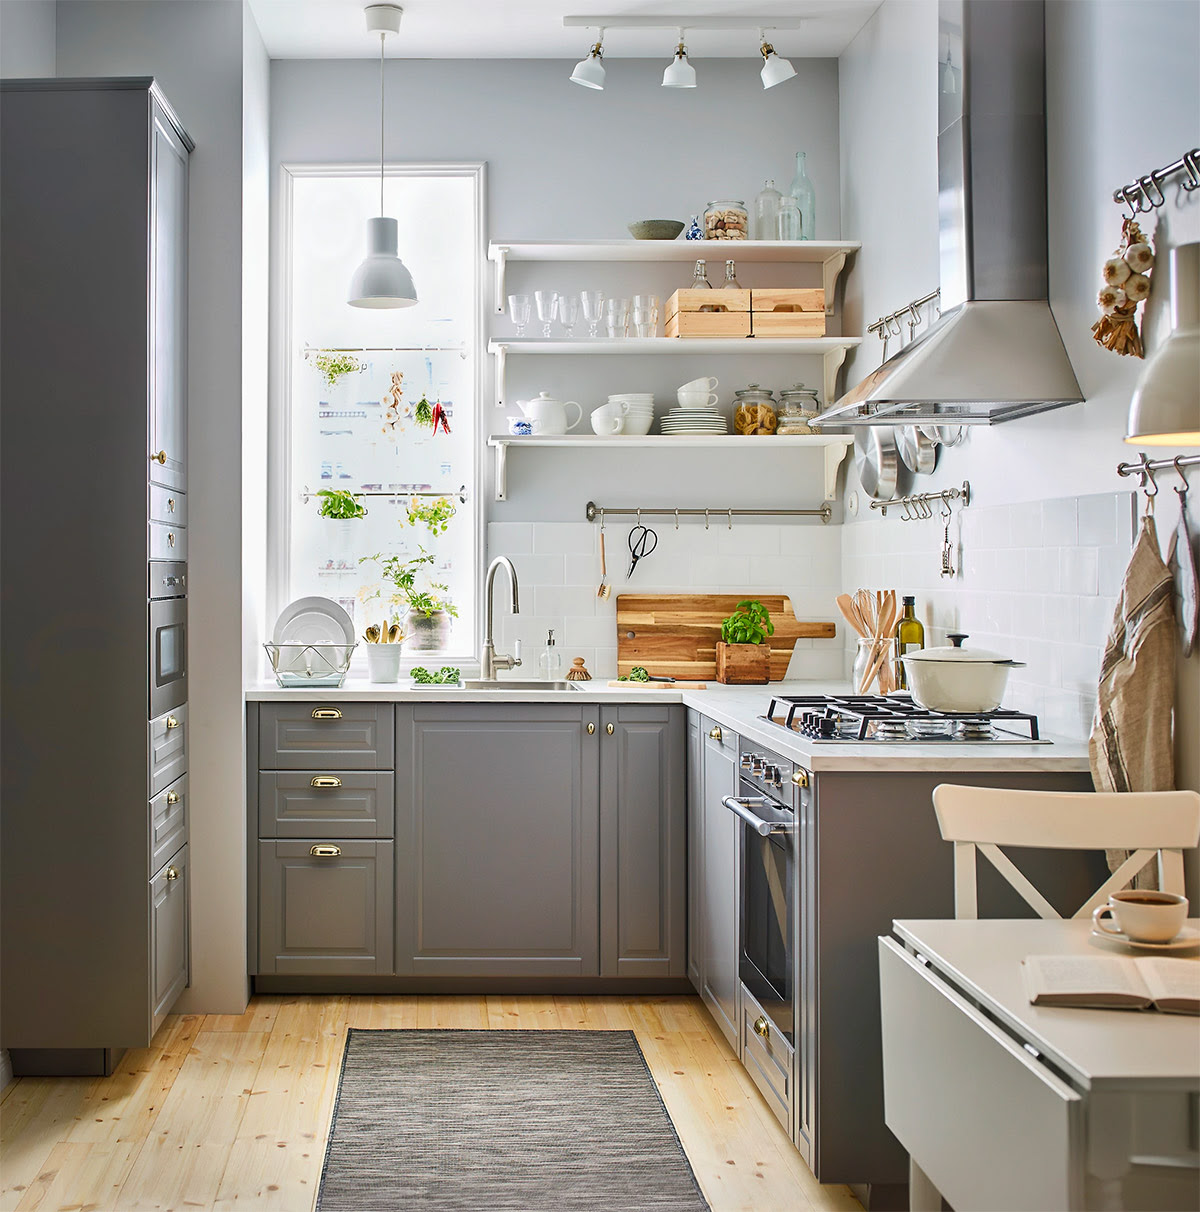 50 Lovely LShaped Kitchen Designs  Tips You Can Use From Them